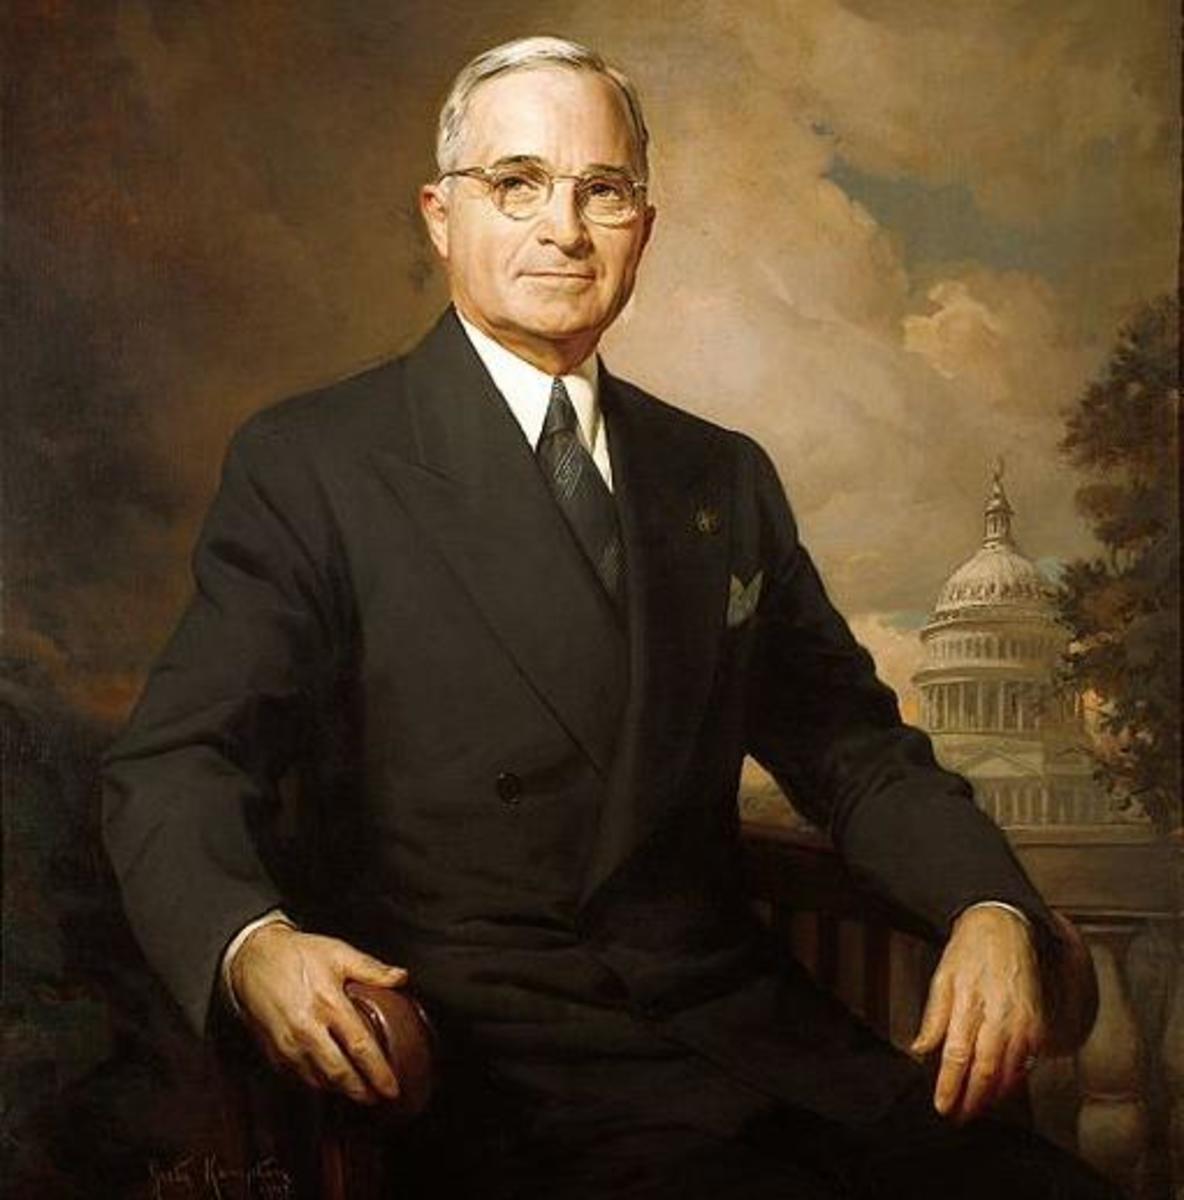 A portrait of Harry Truman.